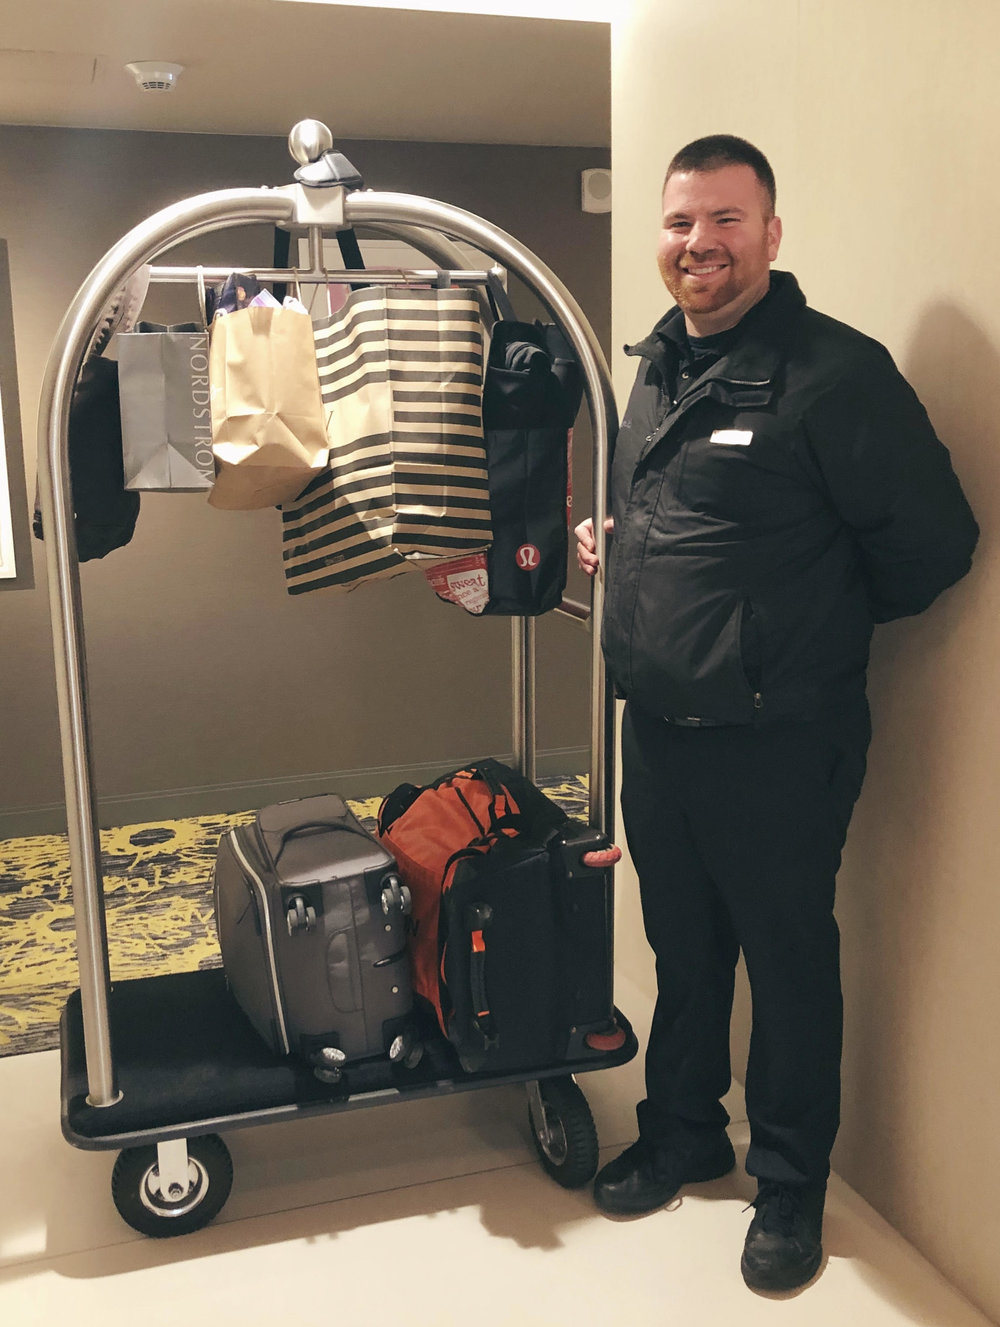 So much luggage but still a friendly smile! - Archer Hotel Austin